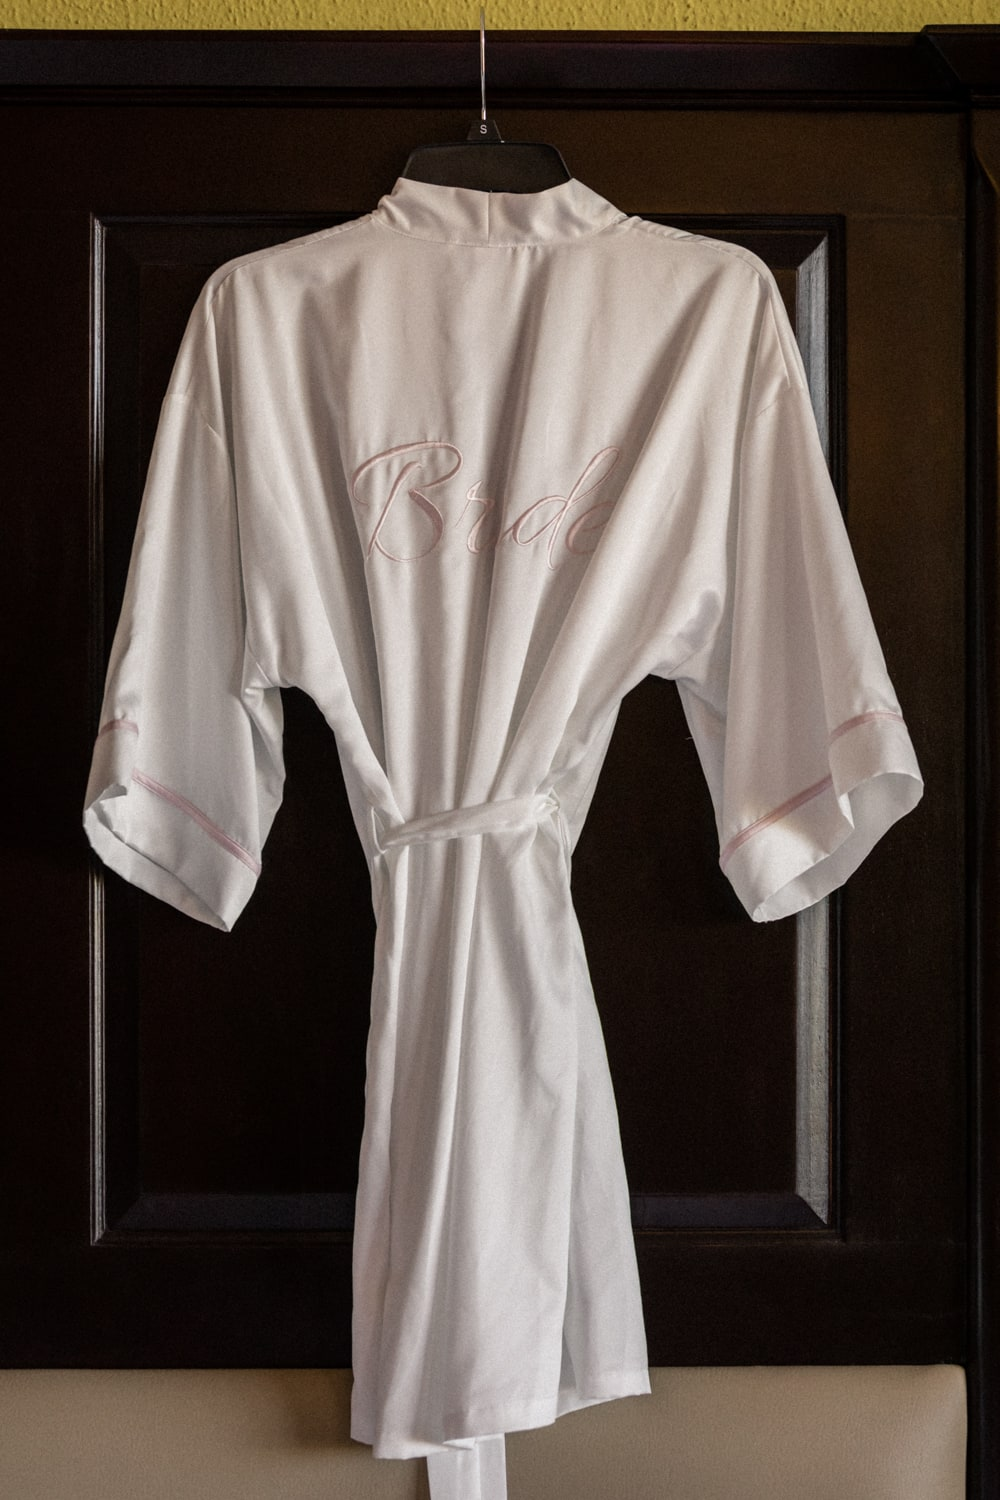 White robe fro bride hanging on headboard in bridal suite.